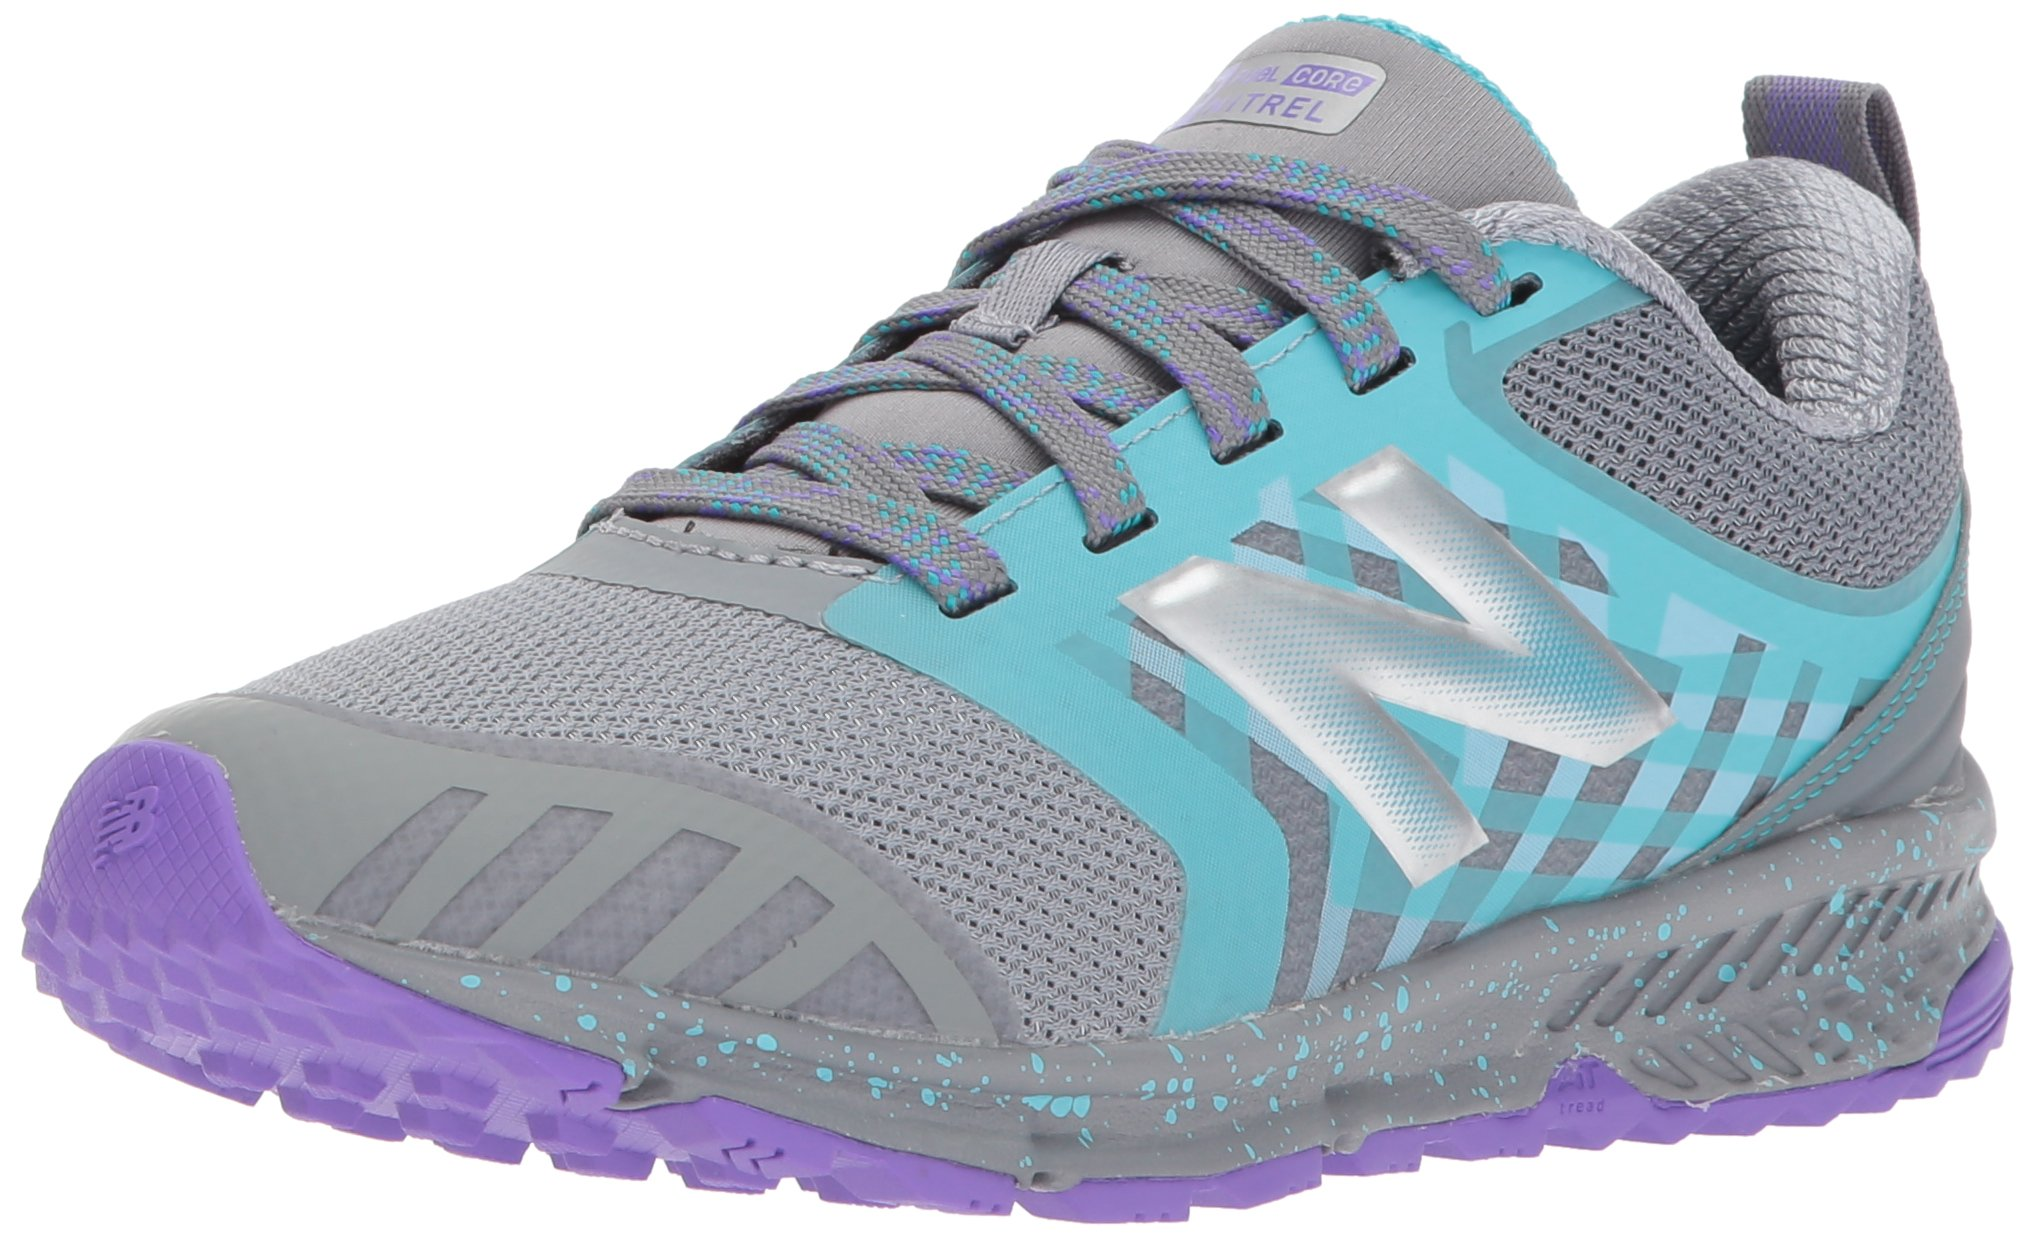 New Balance Girls' Nitrel v3 Trail Running Shoe, Grey/Pisces, 4 W US Big Kid